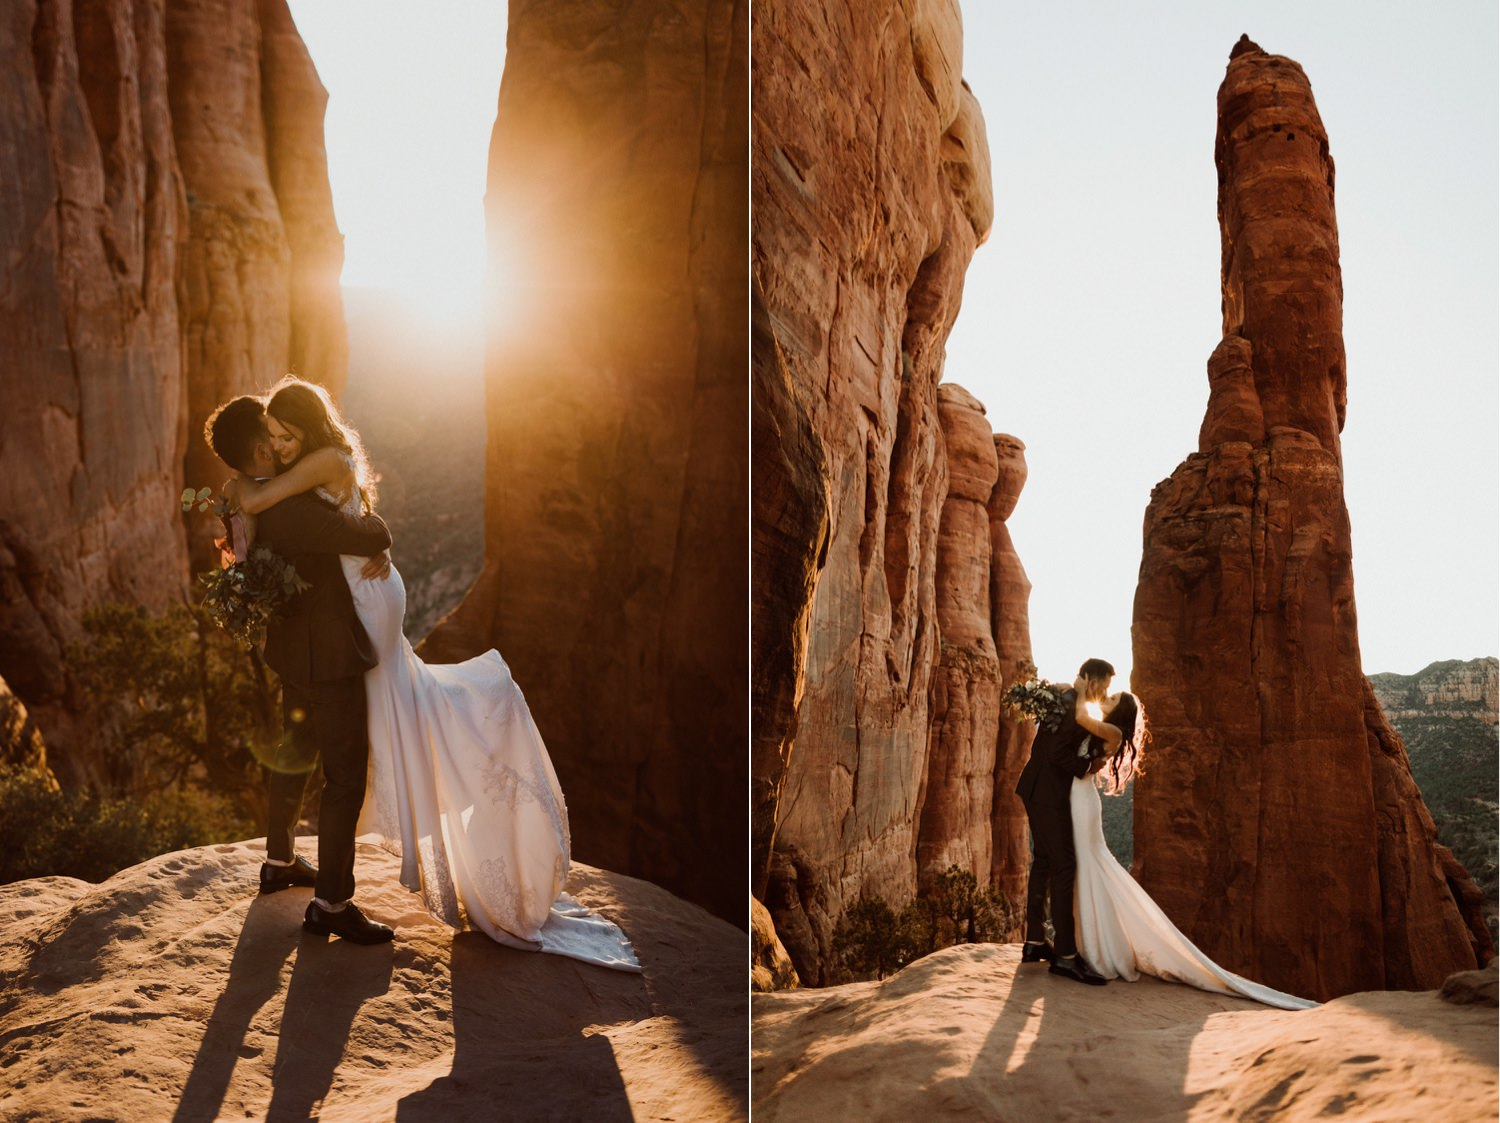 67_intimate-sedona-arizona-wedding-92_intimate-sedona-arizona-wedding-93.jpg